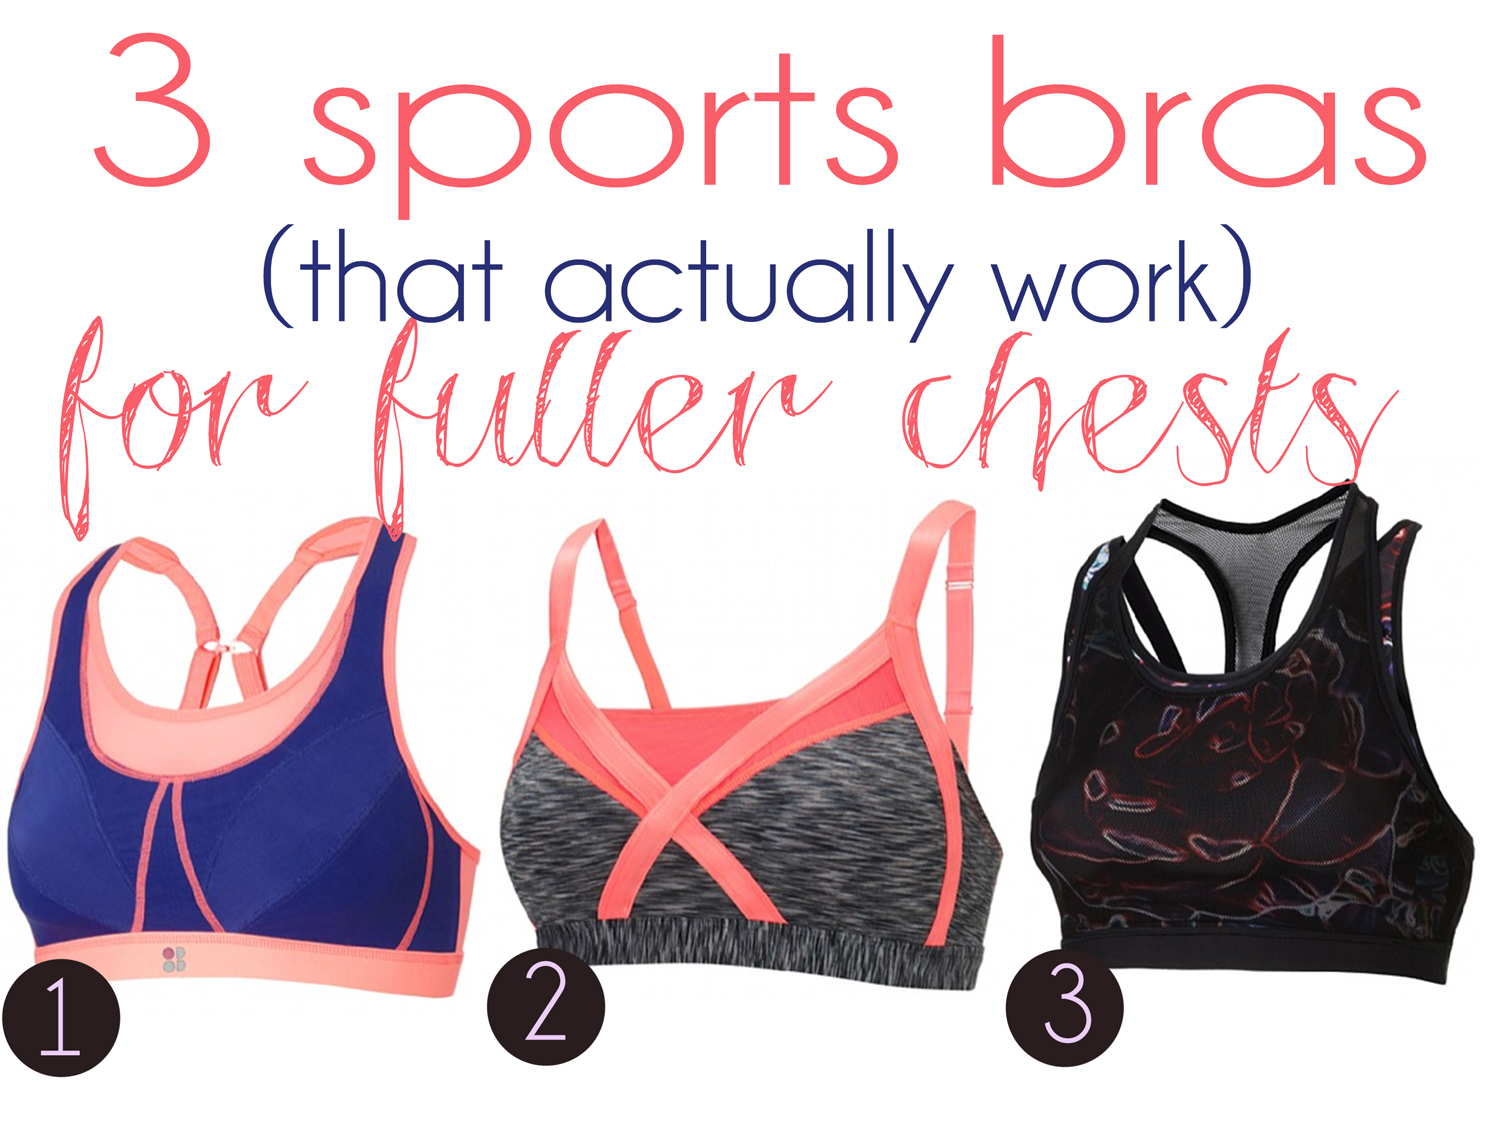 Pin it! Sports bras that actually work.